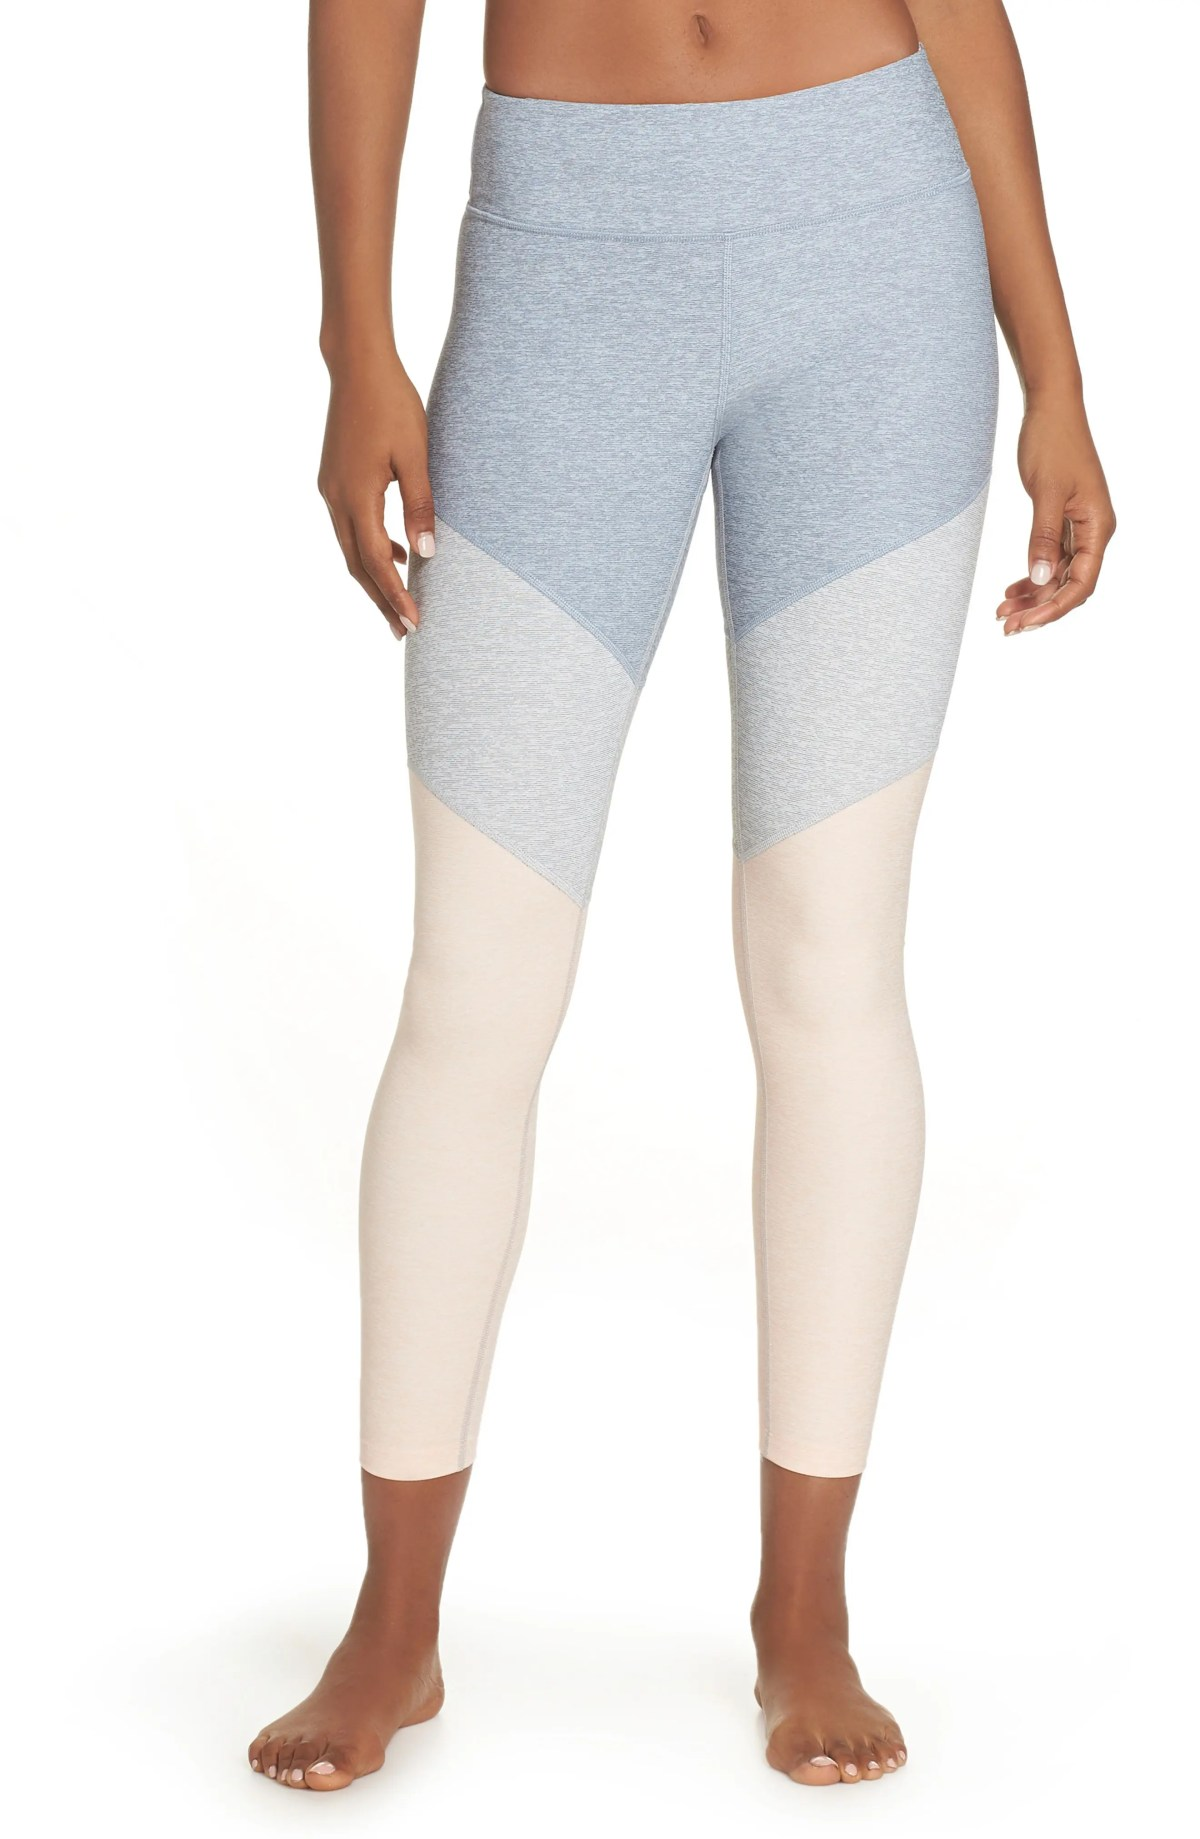 OUTDOOR VOICES 7/8 Springs Leggings, Main, color, LAKE/ DOVE/ ROSE QUARTZ